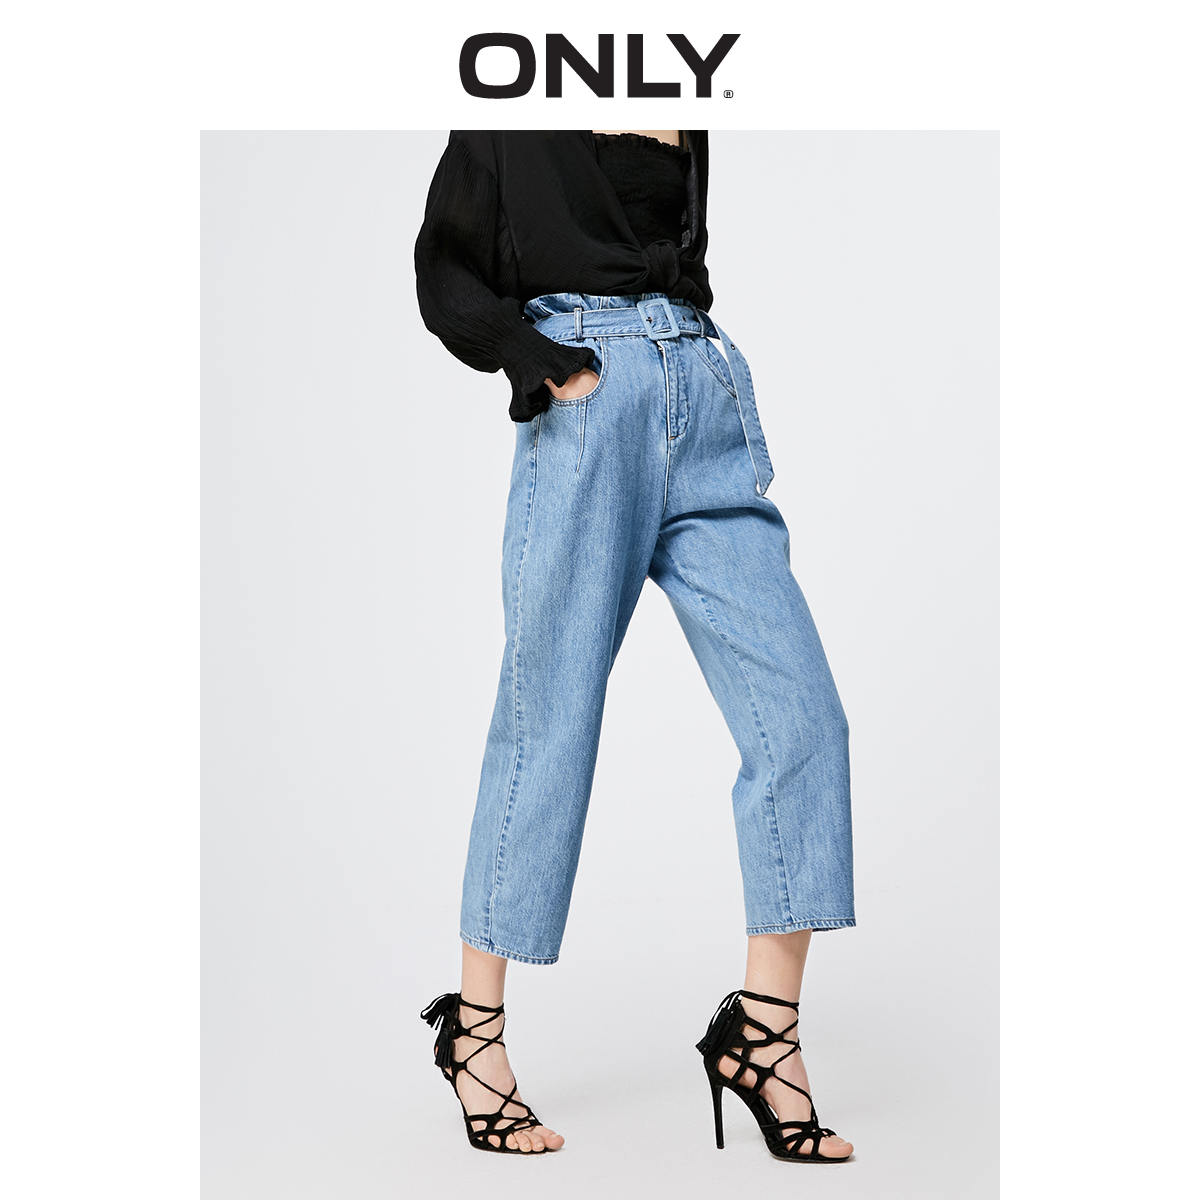 ONLY 2019 Spring Summer New Women's Loose Fit High-rise Crop   Jeans   |119149685